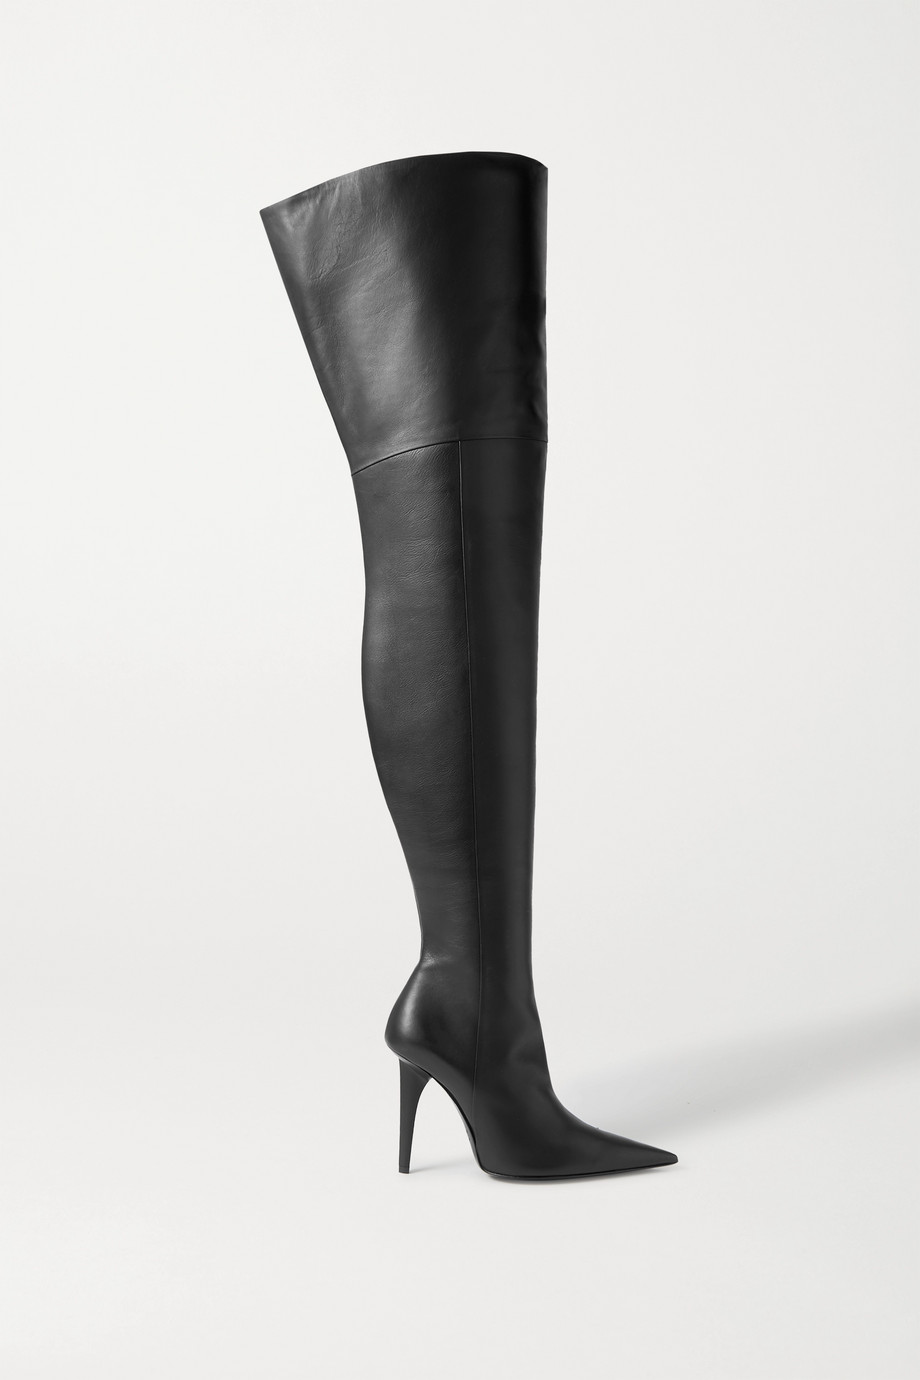 Balenciaga Knife Shark leather over-the-knee boots